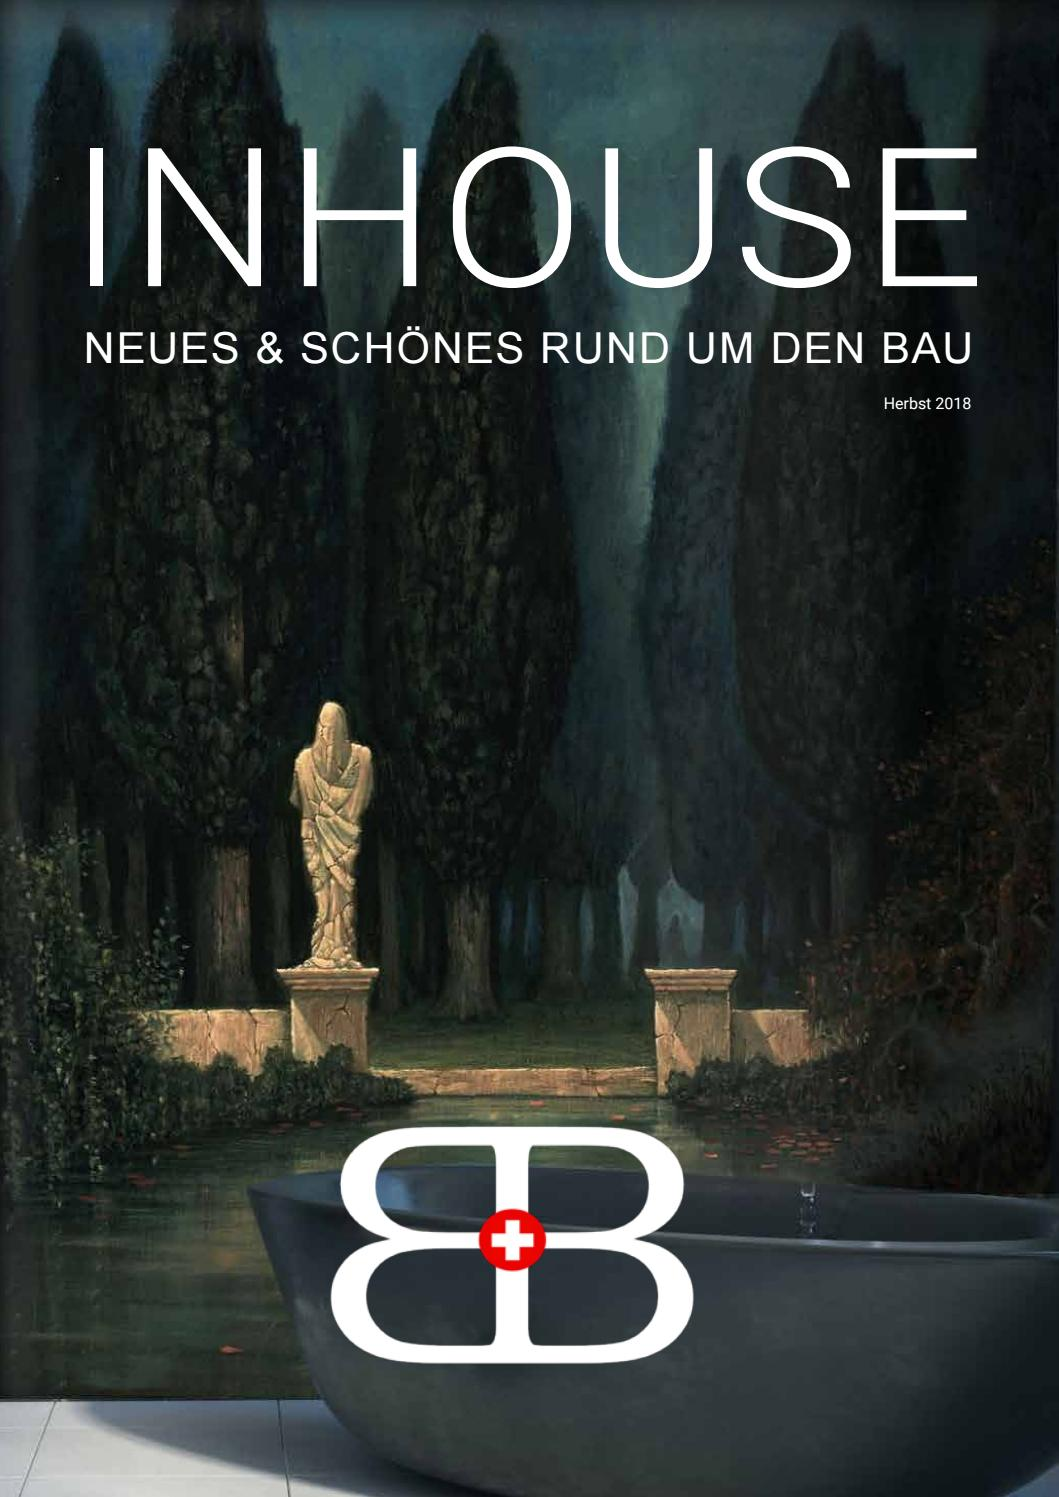 Inhouse Herbst 2018 By Baubiblech Issuu Promag Tablet Pro Farma